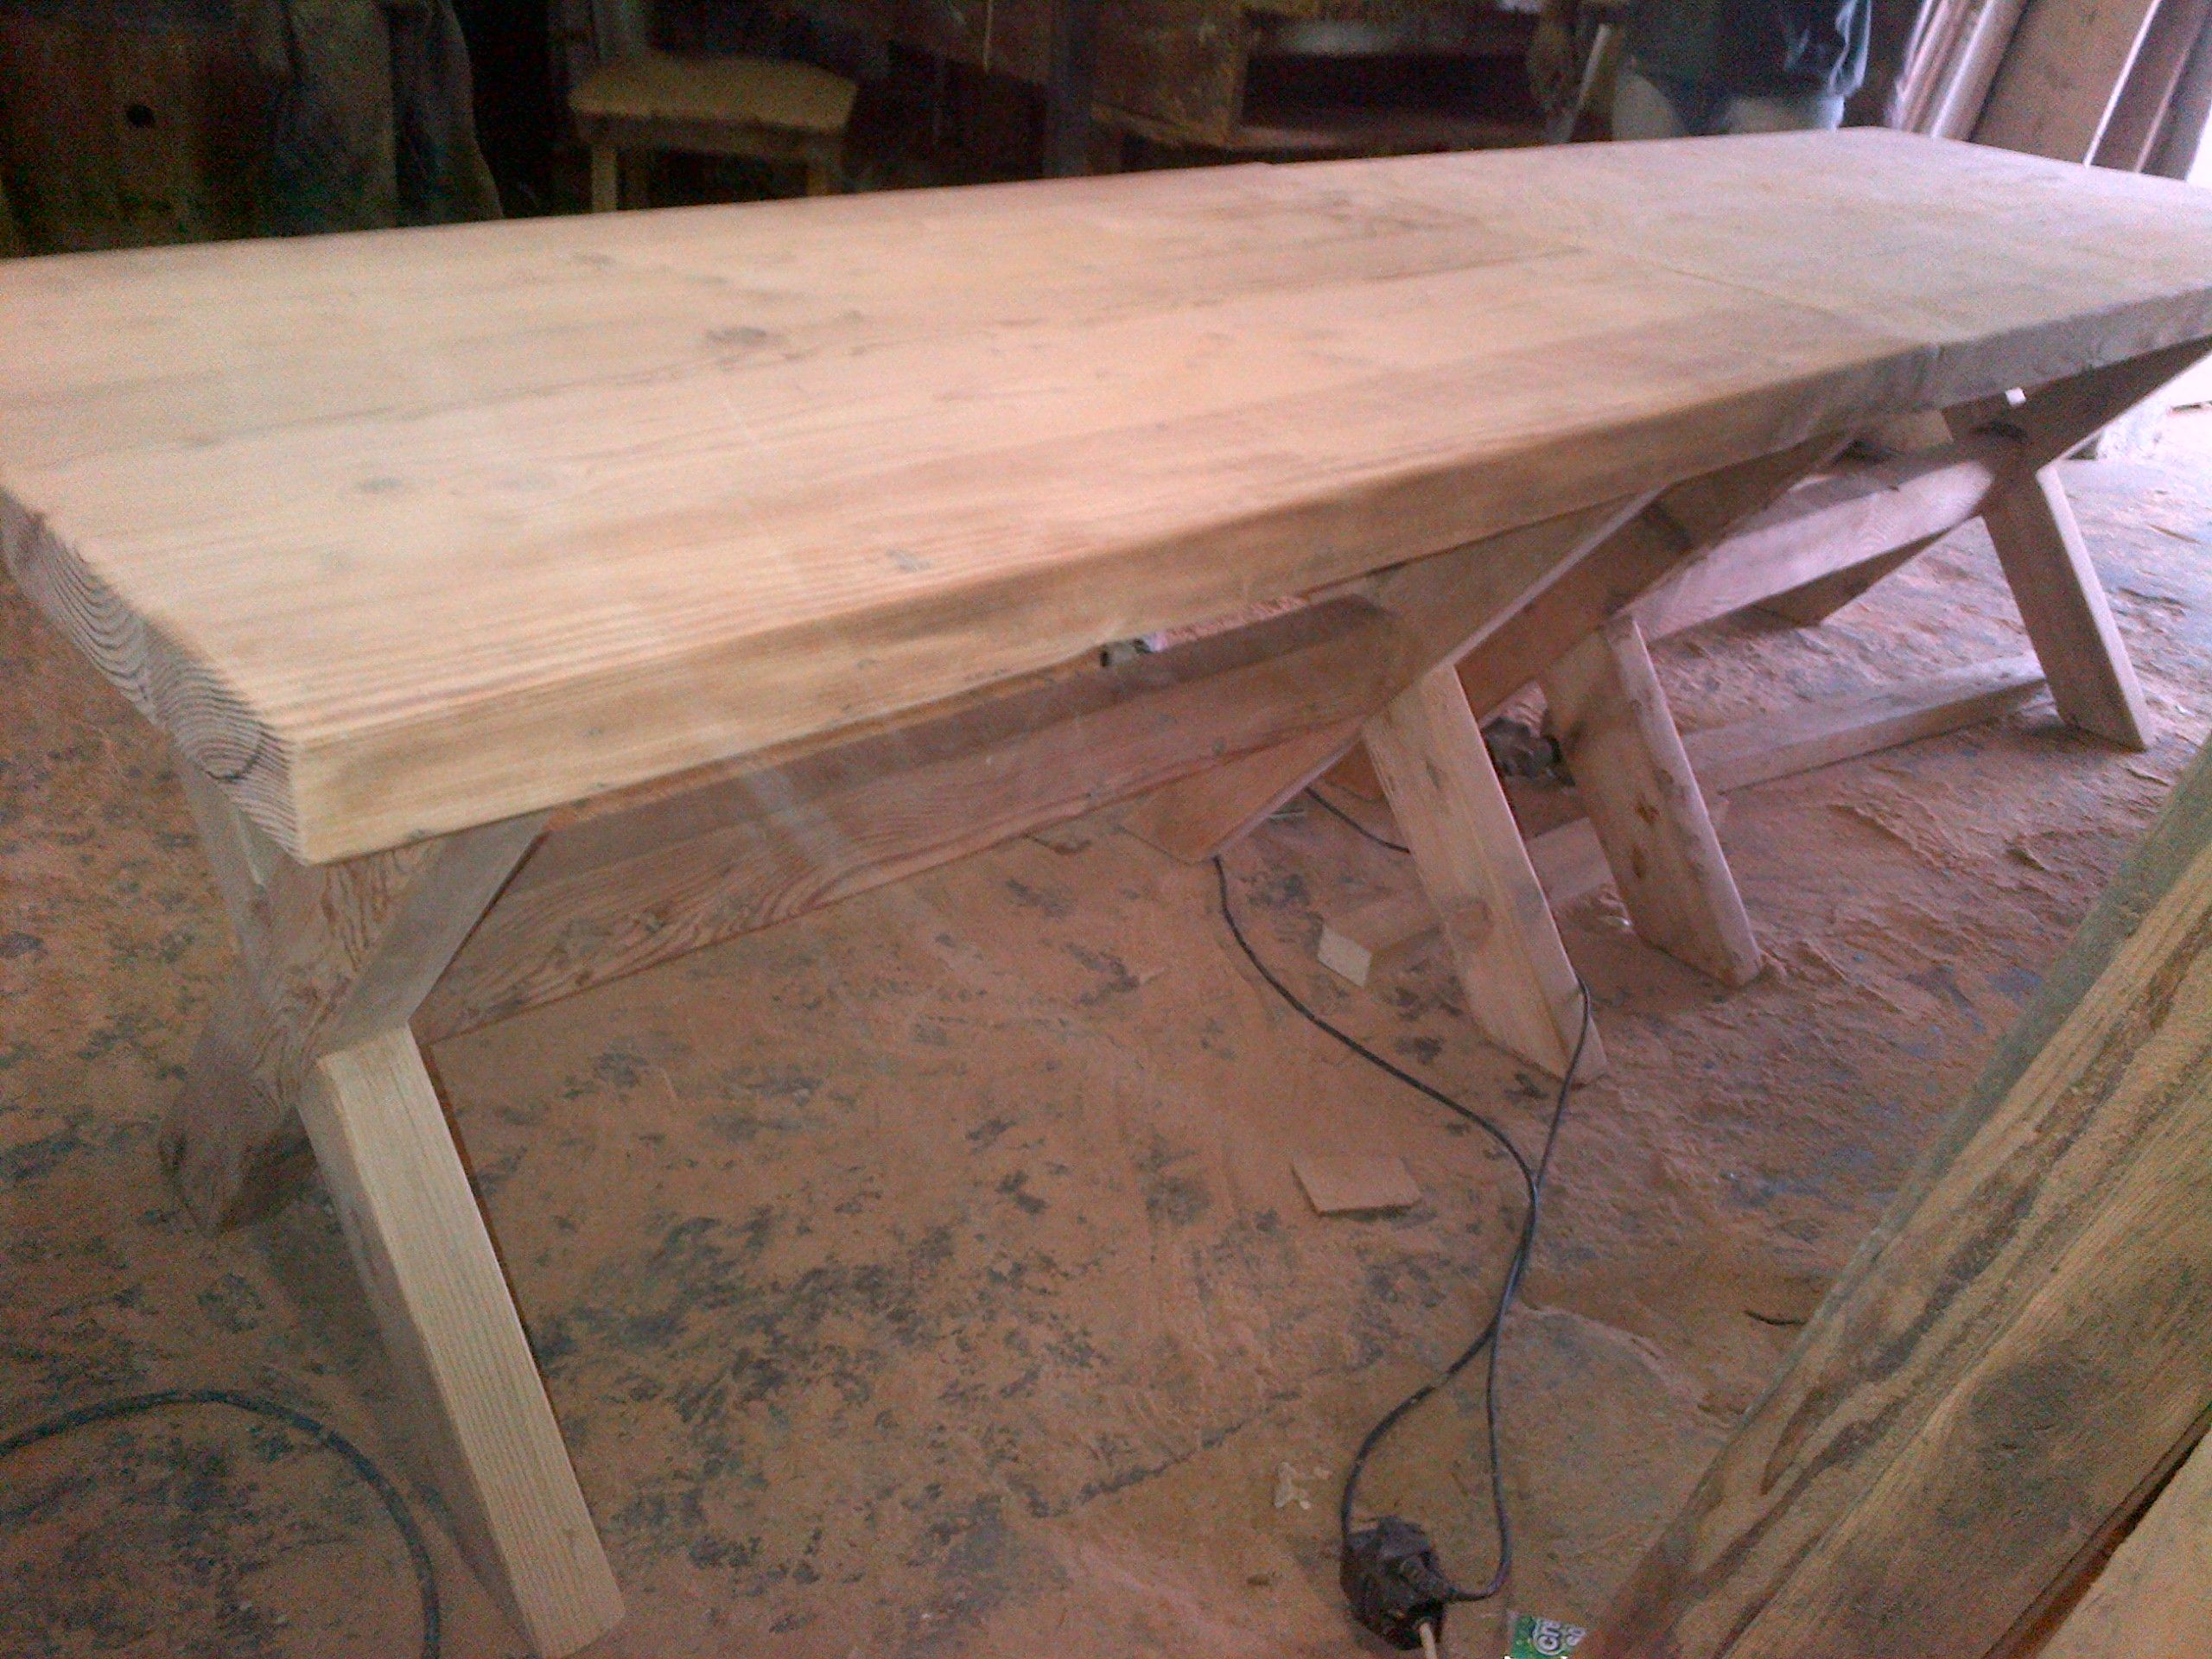 Rustic Dining Room Tableseats 10Recycled And Reclaimed Wood Inspiration Dining Room Tables Wood Decorating Inspiration